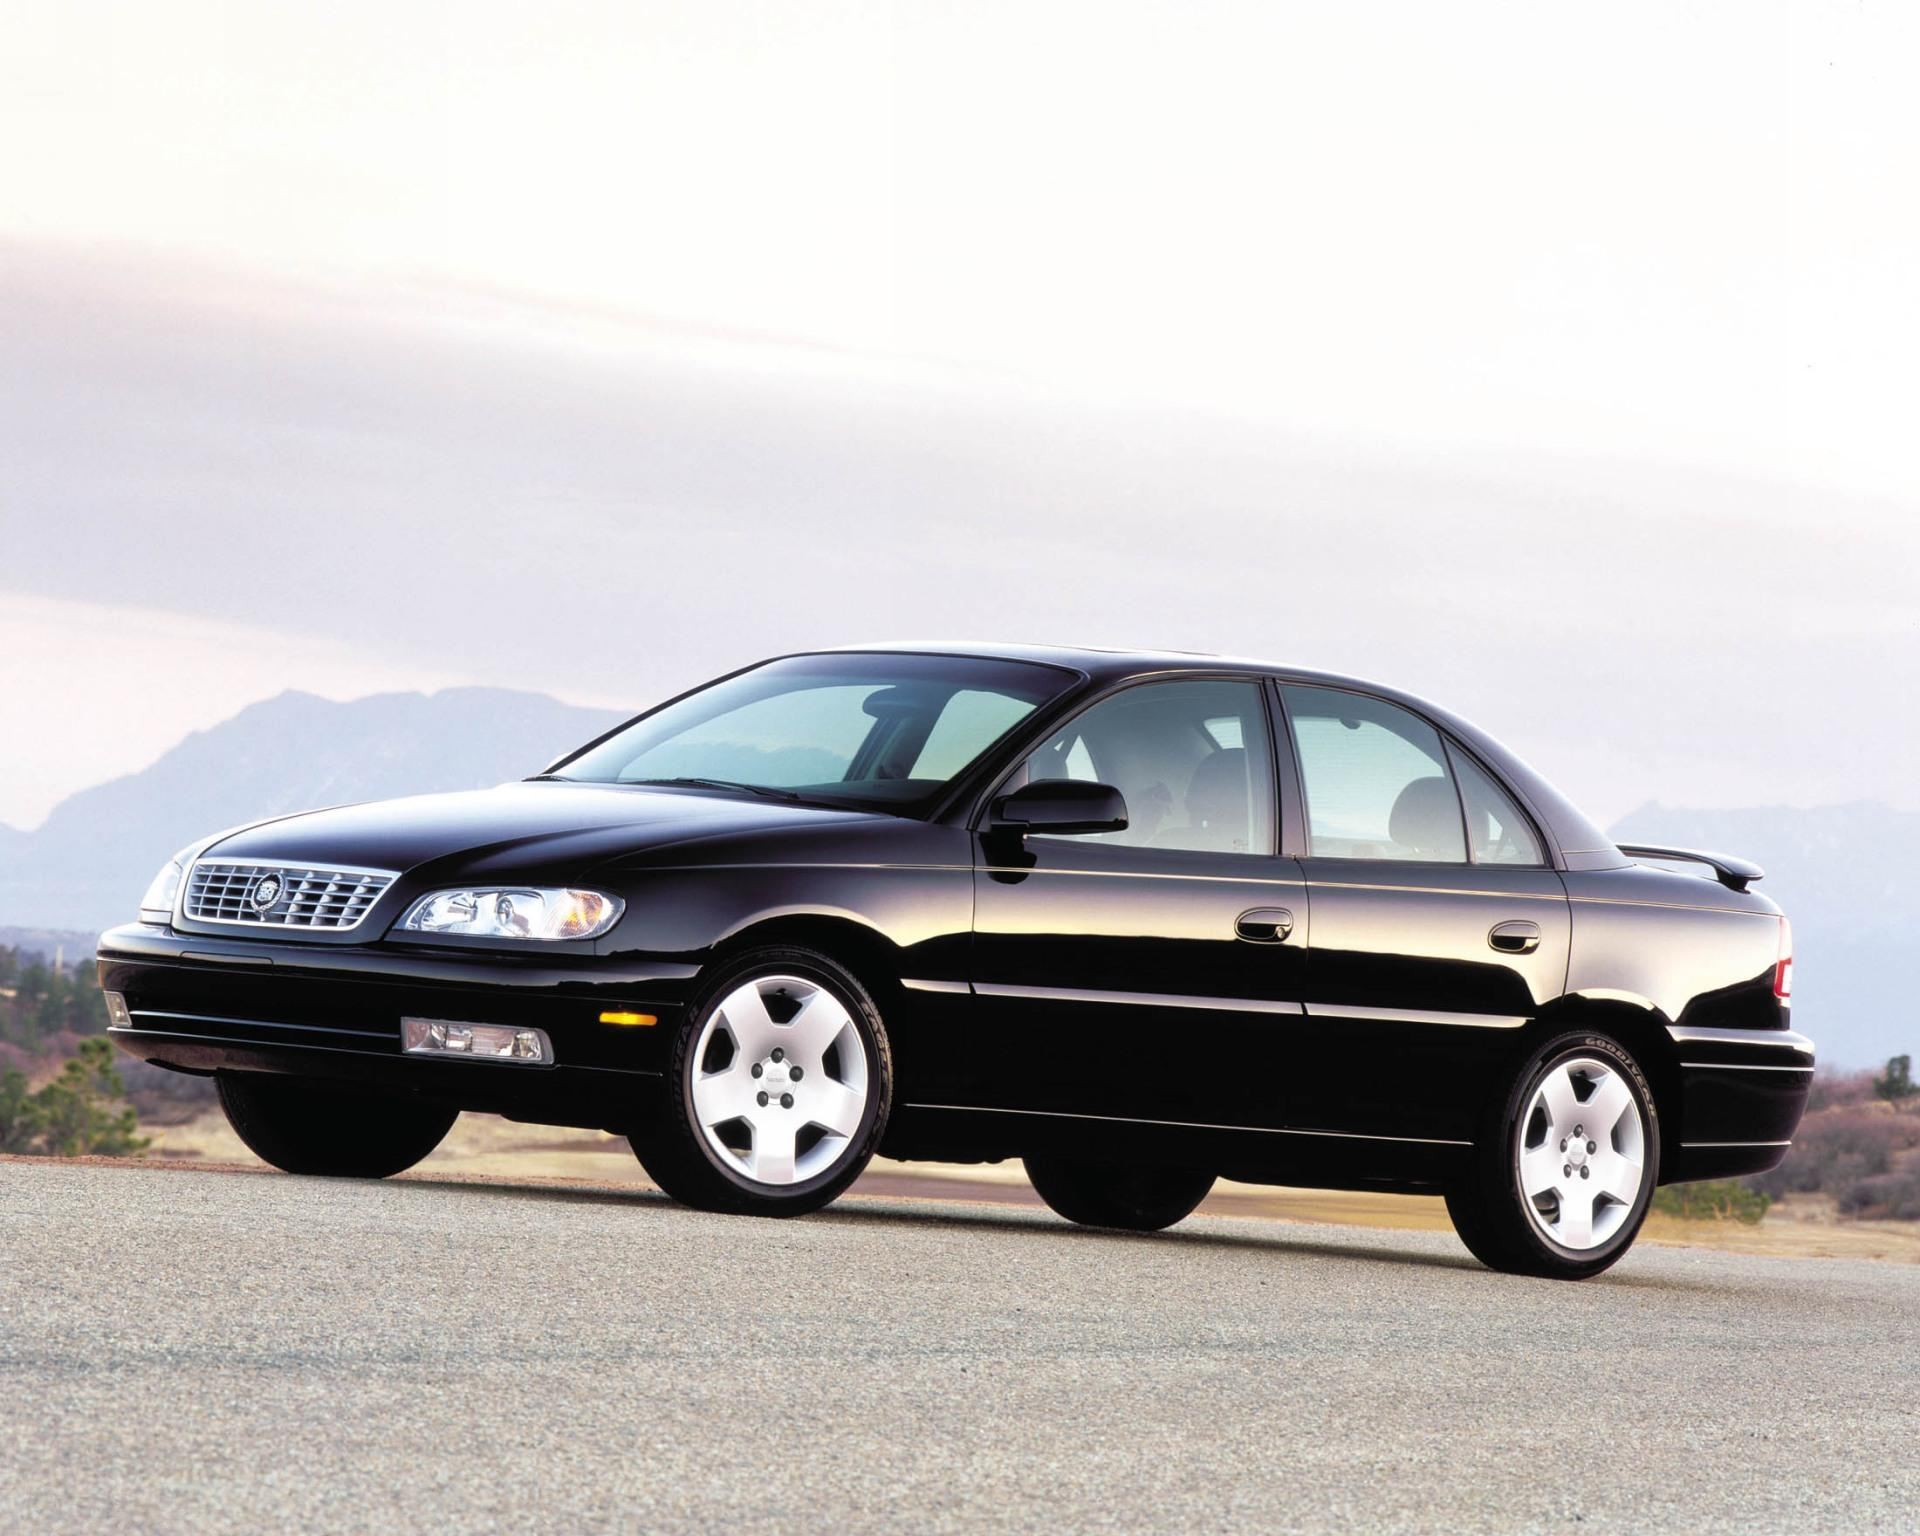 2001 Cadillac Catera History, Pictures, Value, Auction Sales, Research and  News